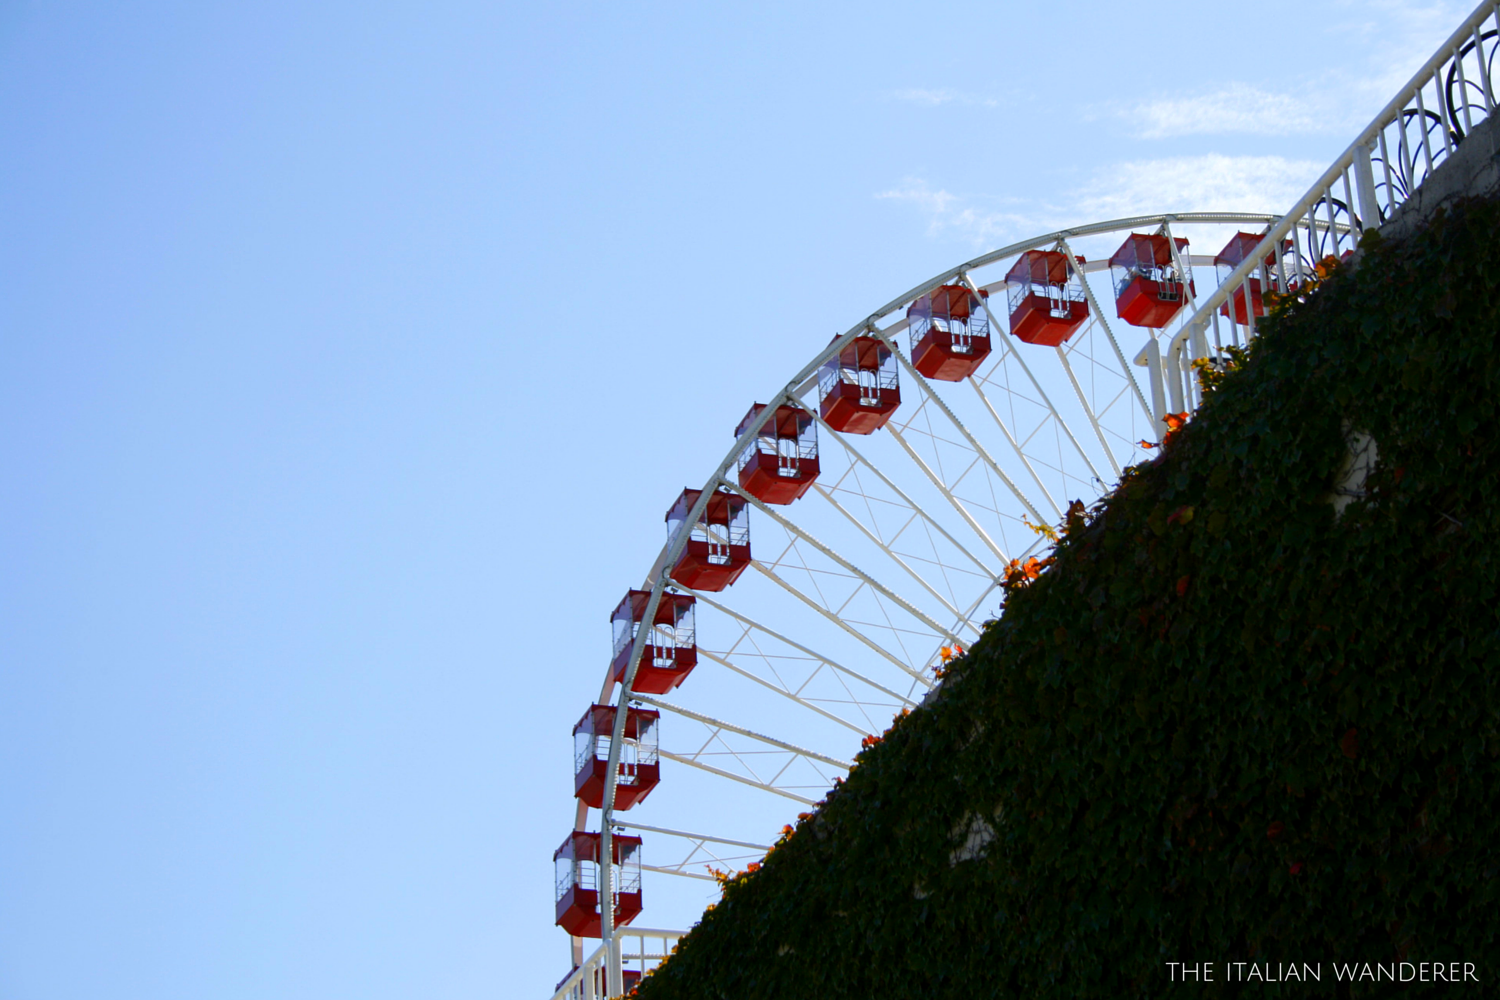 The Navy Pier Park, Chicago